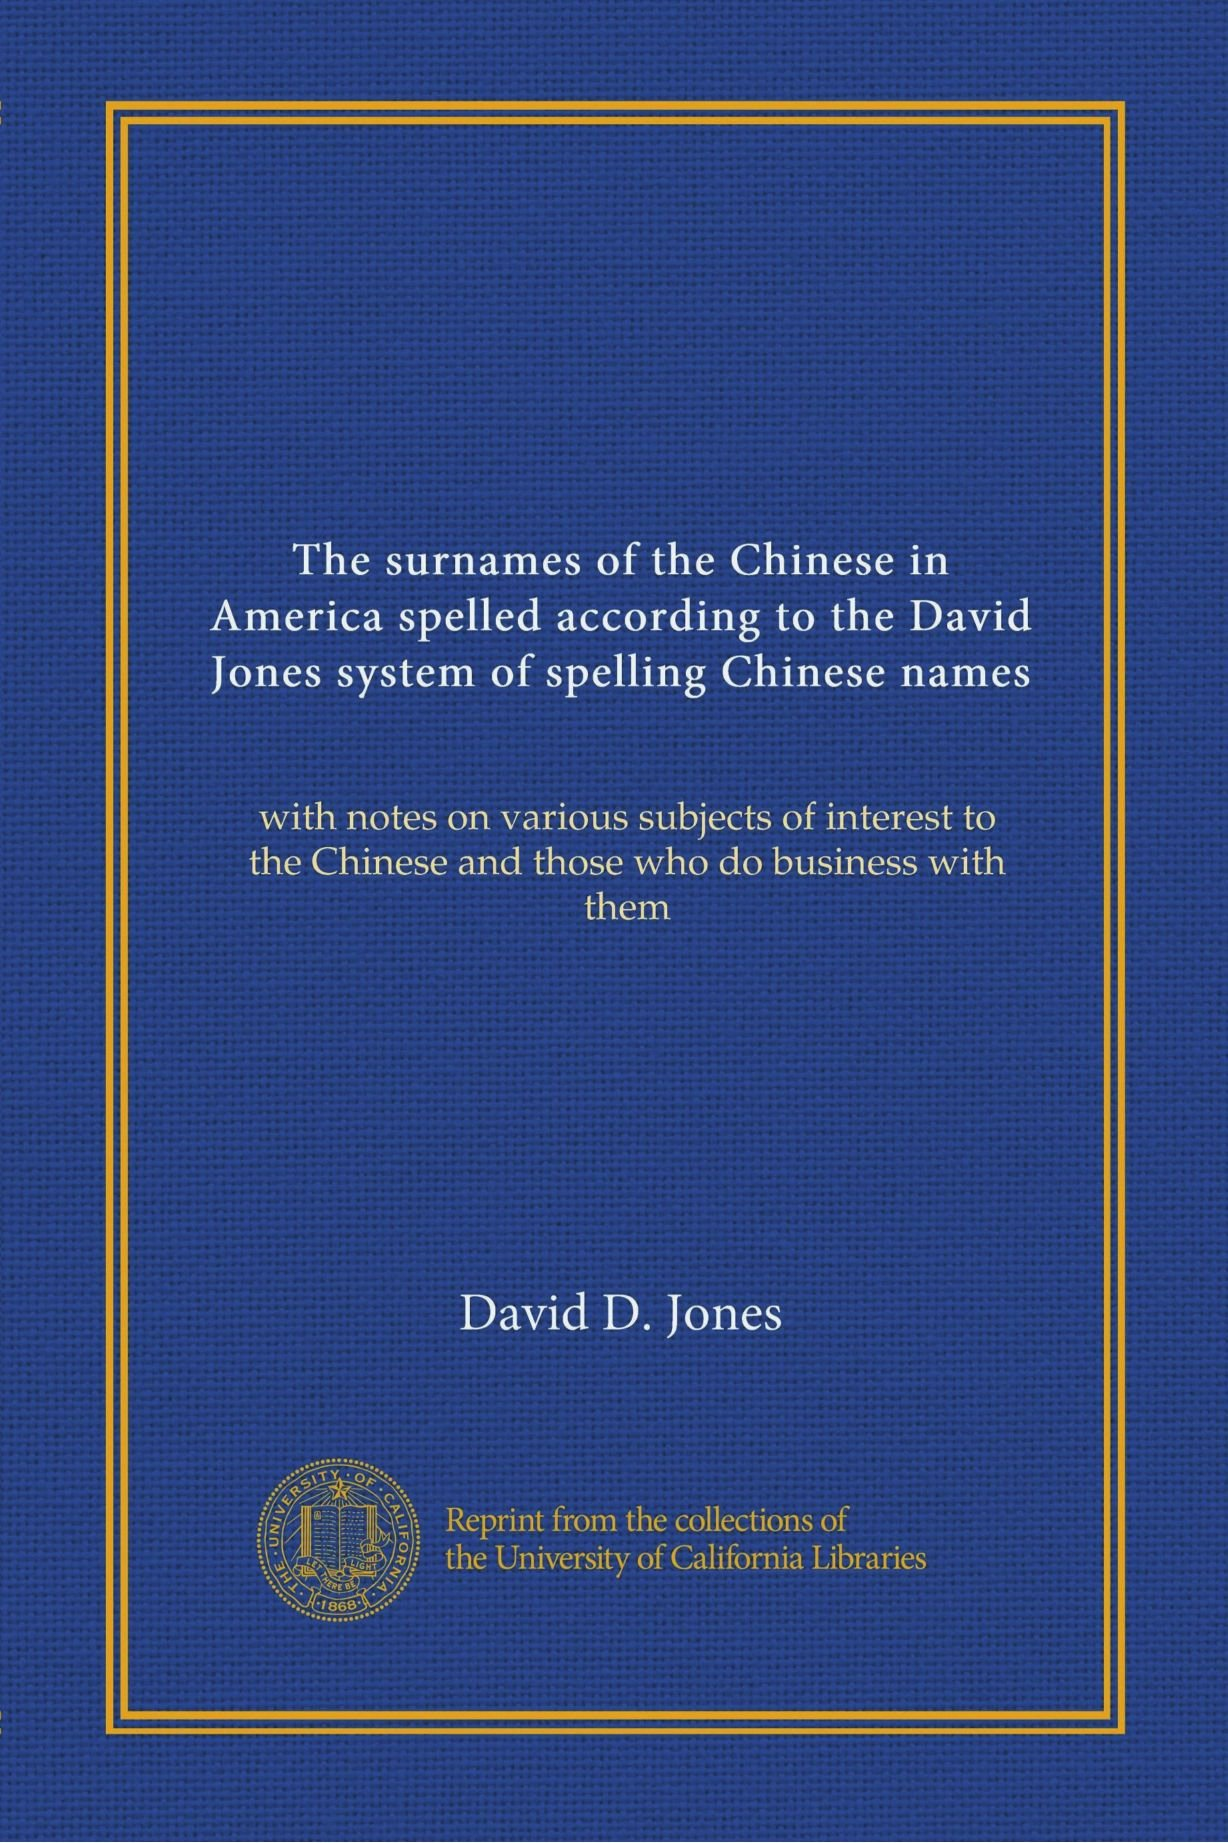 Download The surnames of the Chinese in America spelled according to the David Jones system of spelling Chinese names: with notes on various subjects of ... Chinese and those who do business with them pdf epub